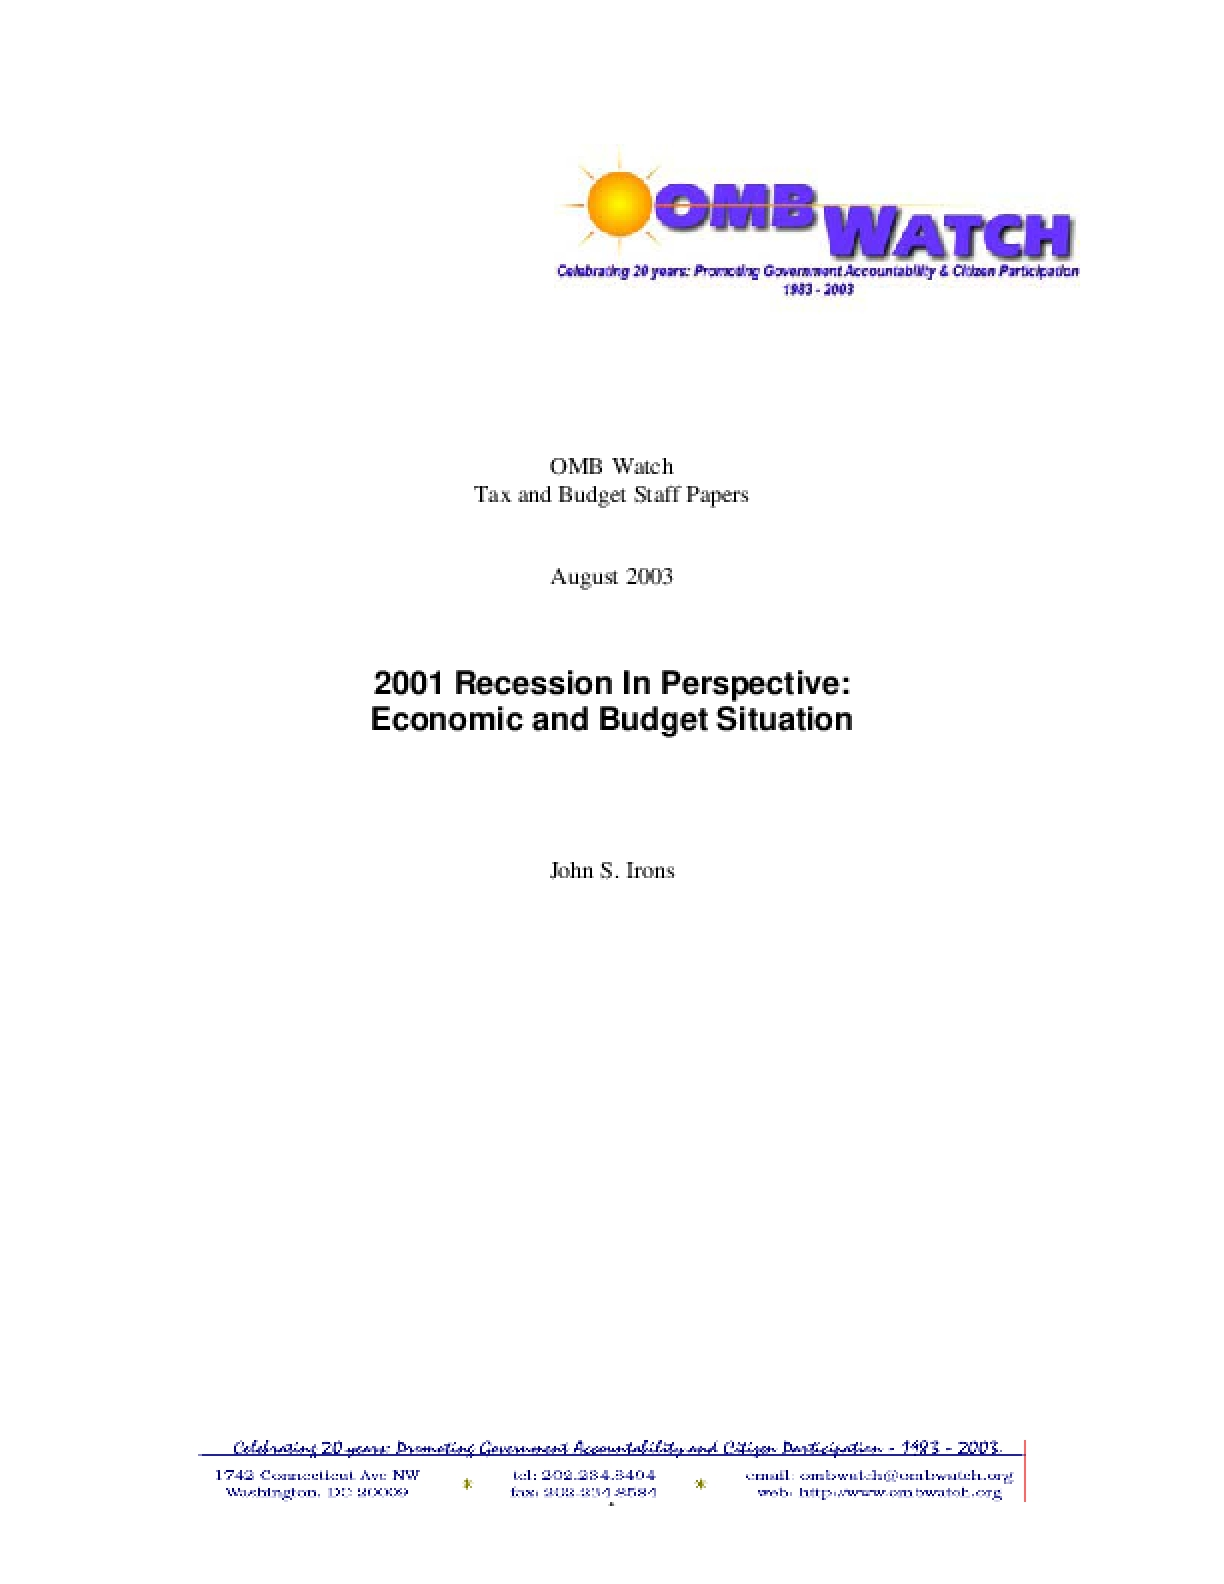 2001 Recession In Perspective: Economic and Budget Situation